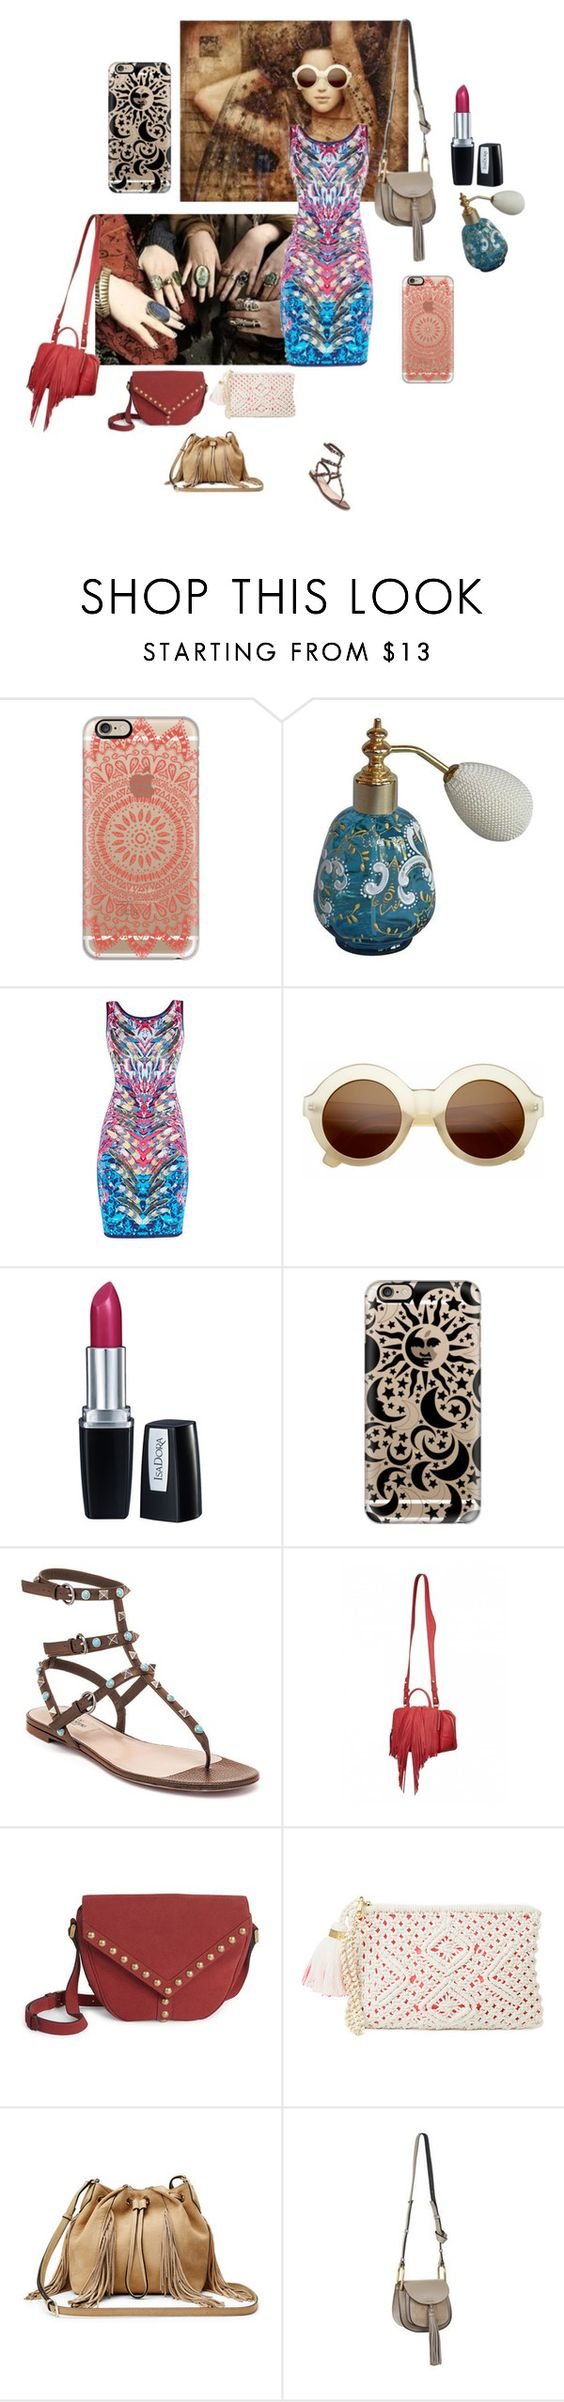 """""""🌺🌼🌺"""" by lolla-cher ❤ liked on Polyvore featuring Casetify, Hervé Léger, ZeroUV, Isadora, Valentino, The Volon, Yves Saint Laurent, Lilly Pulitzer, Diane Von Furstenberg and Chloé"""